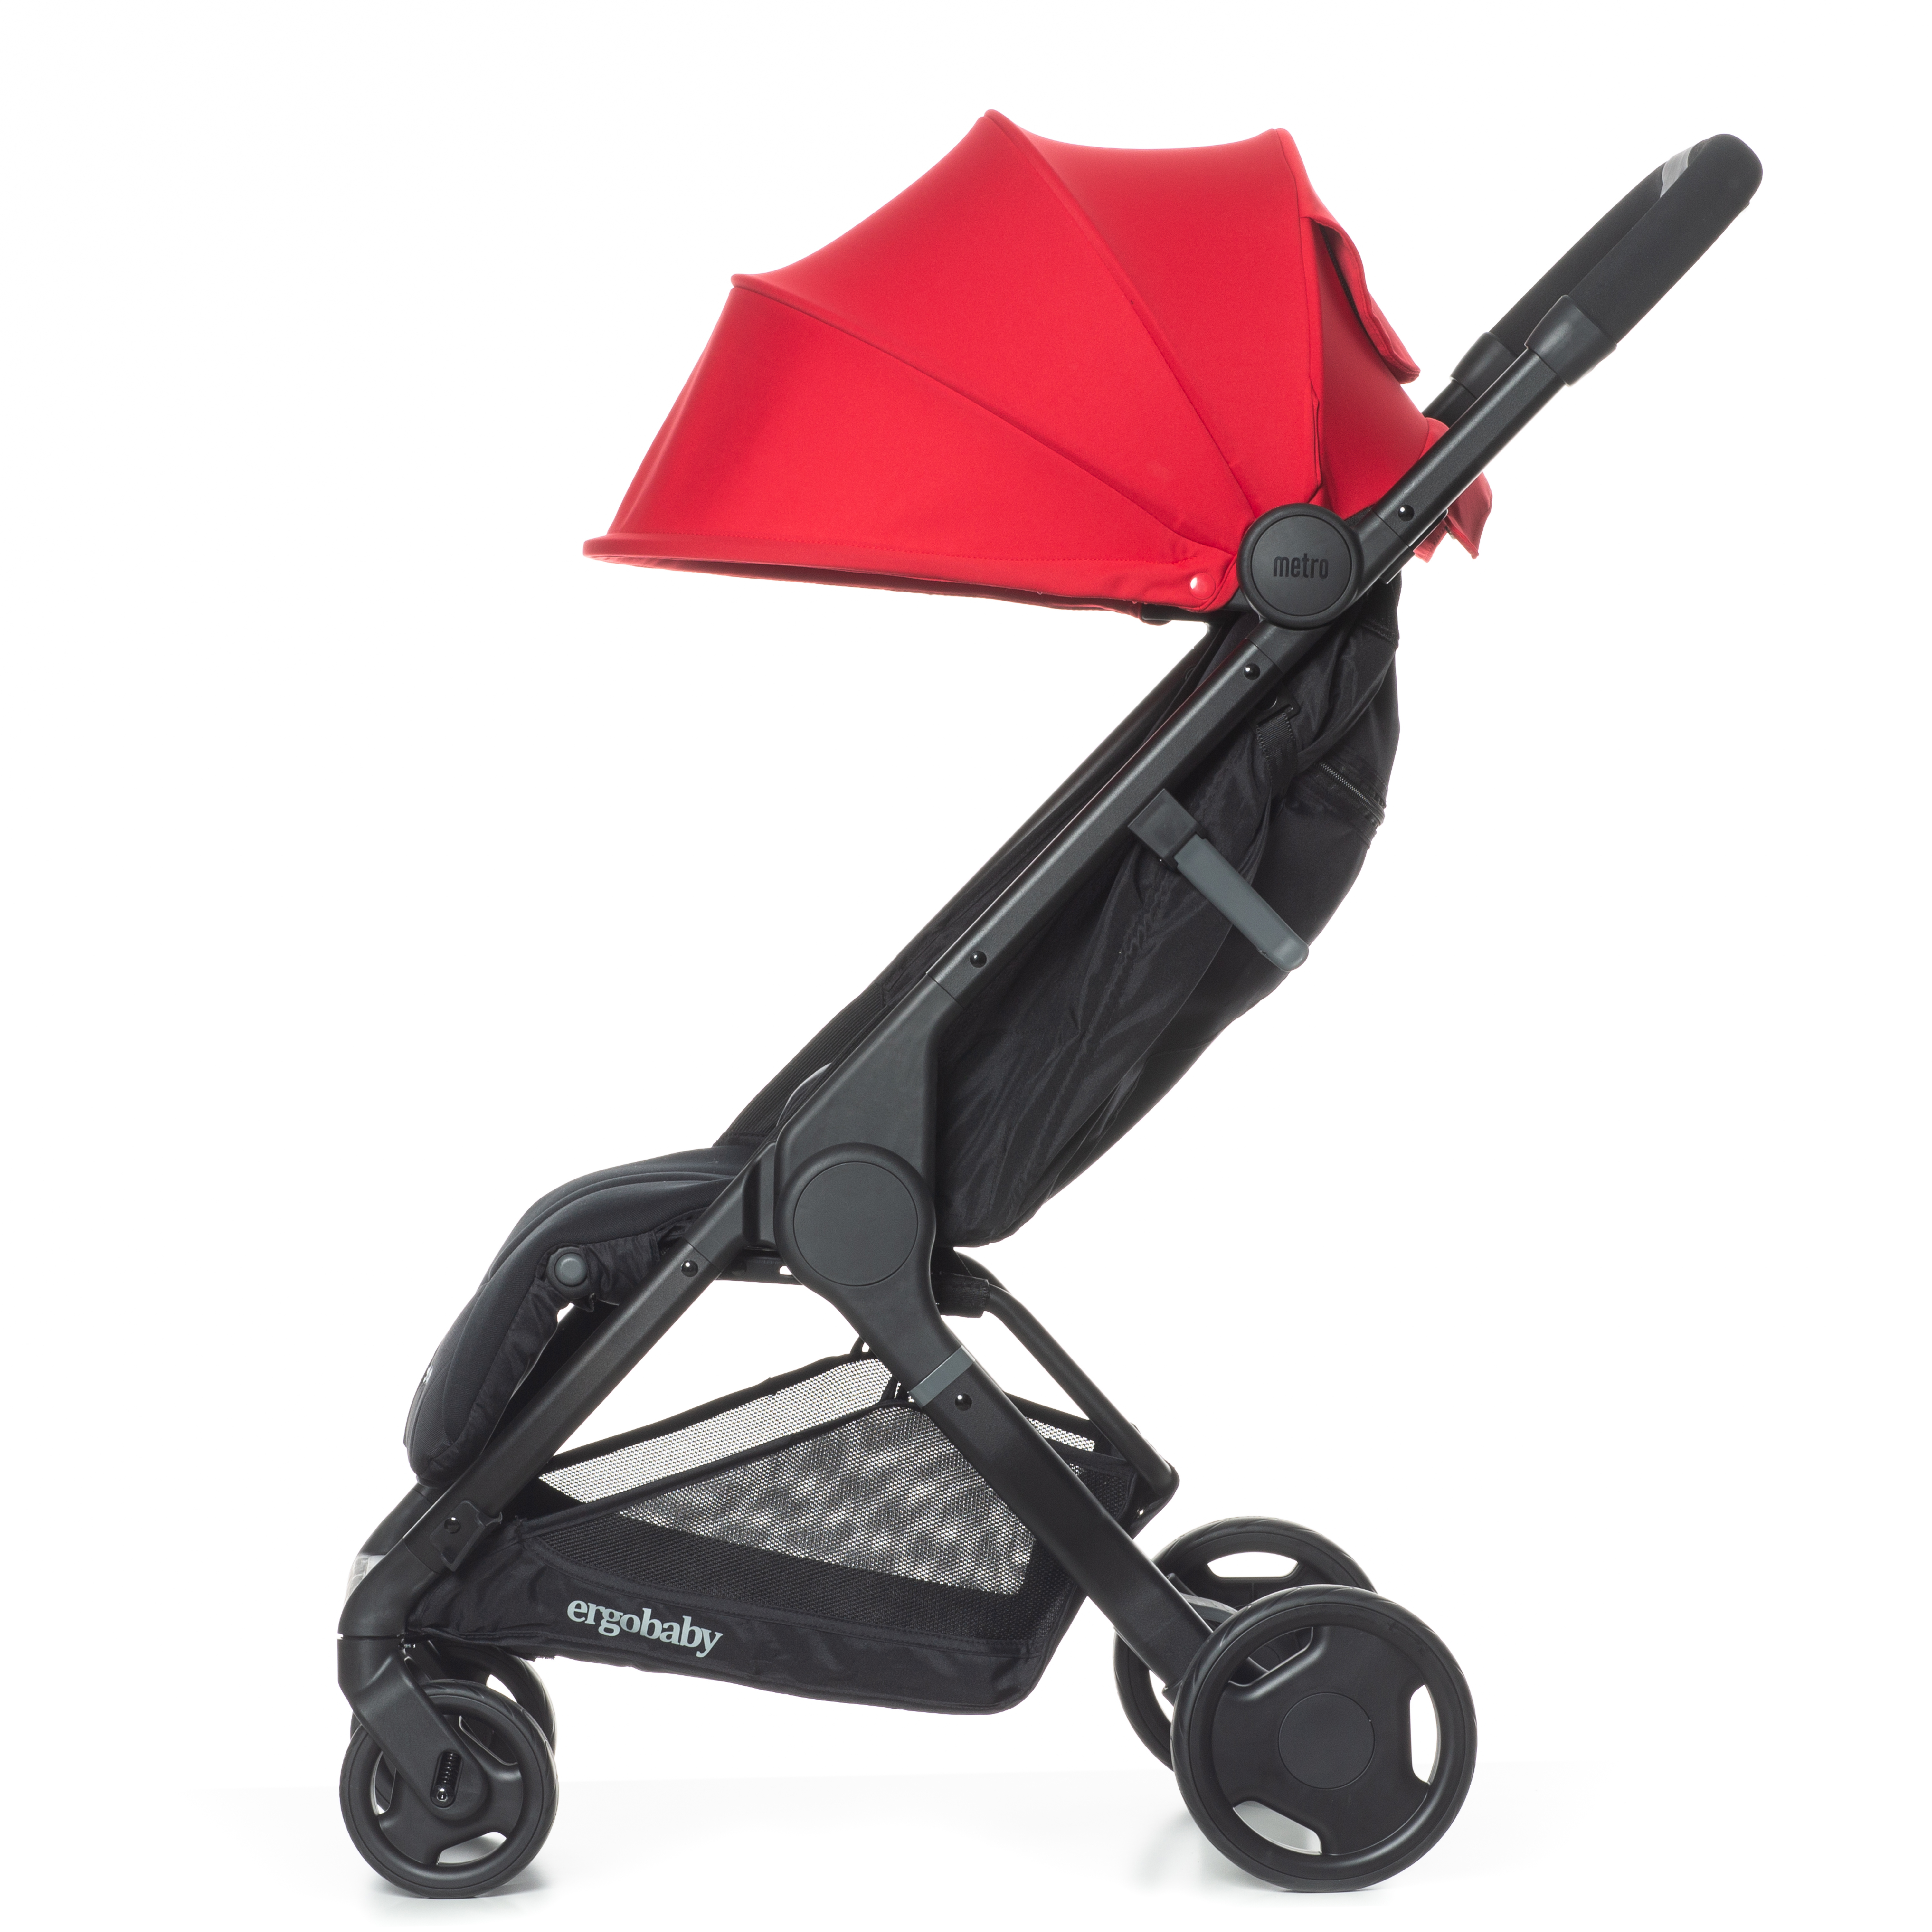 The high-tech Origami stroller reviews - Consumer Reports | 6000x6000